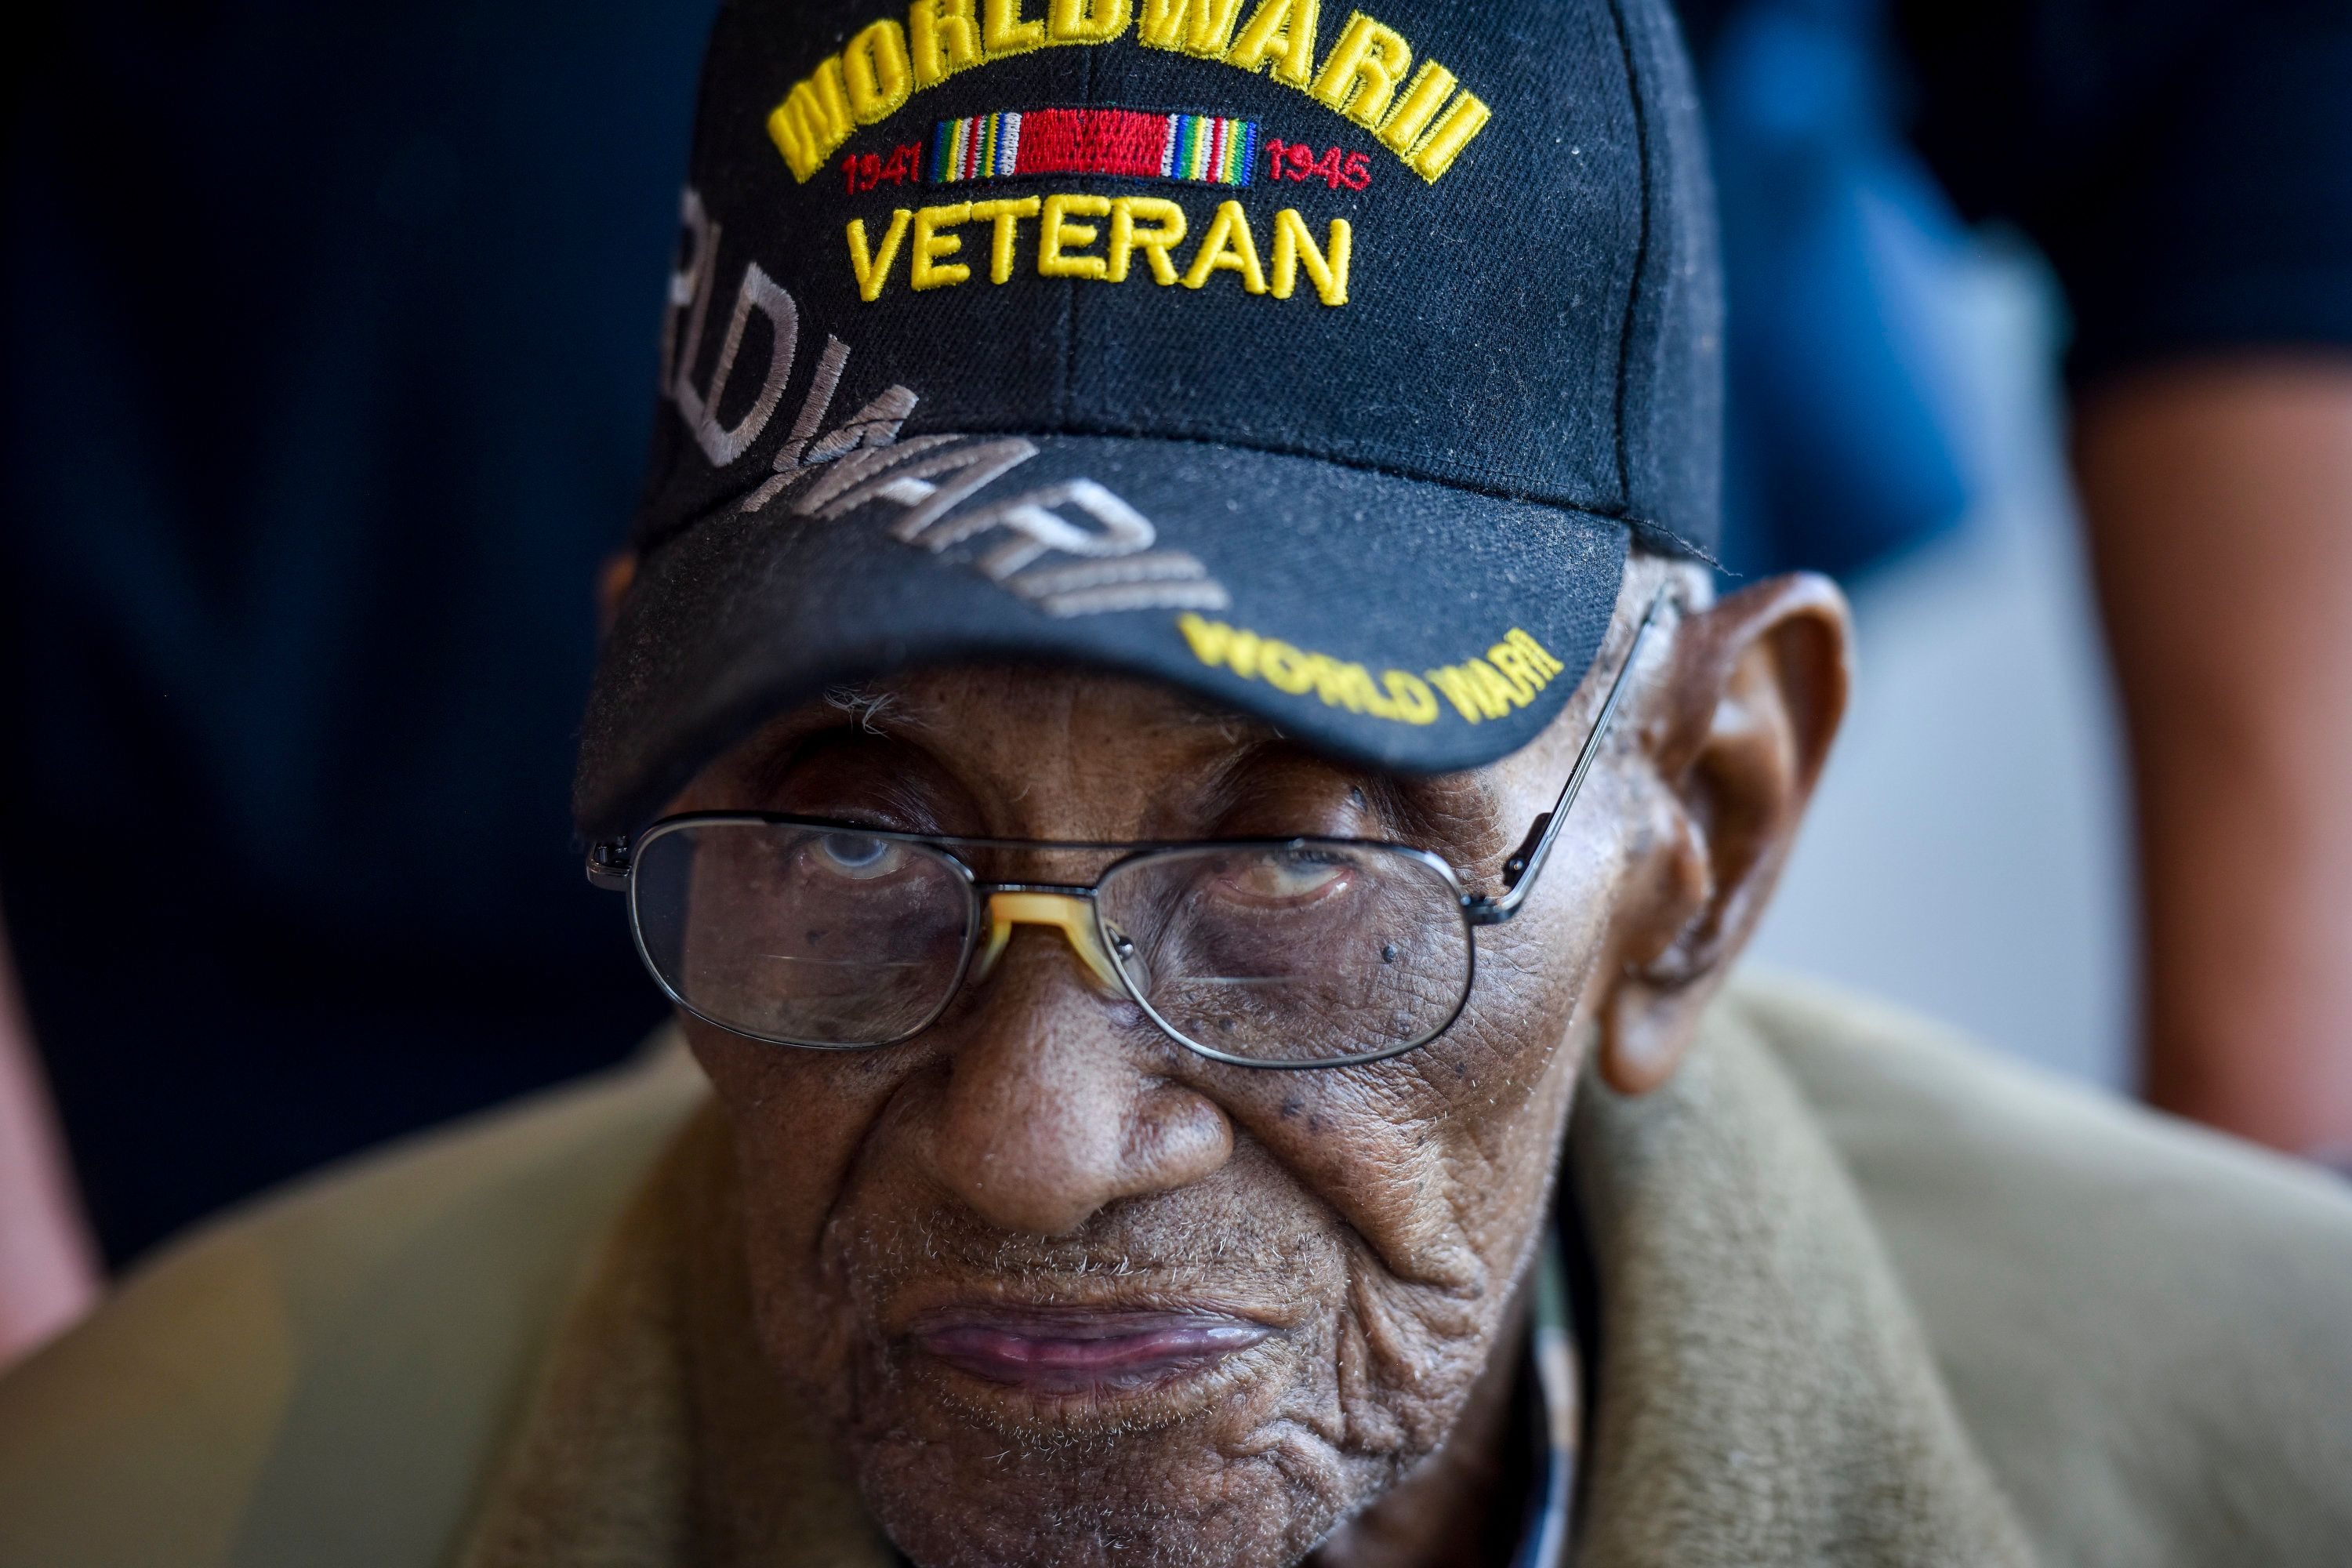 WASHINGTON, DC - APRIL 8: Mr. Richard Overton, 112-years-old, the 3rd oldest man on the planet, the oldest male in the United States, and the oldest military veteran, visits the National Museum of African American History and Culture - NMAAHC - on Sunday, April 8, 2018, in Washington, DC.  Overton, who wants it to be known that he is also recognized as the country's oldest cigar smoker, was granted his dream of visiting the museum in advance of his upcoming birthday.  Born on May 11, 1906, in St. Mary's Colony, Bastrop County, Texas, Overton is the grandson of a Tennessee slave who moved to Texas upon emancipation.   (Photo by Jahi Chikwendiu/The Washington Post via Getty Images)